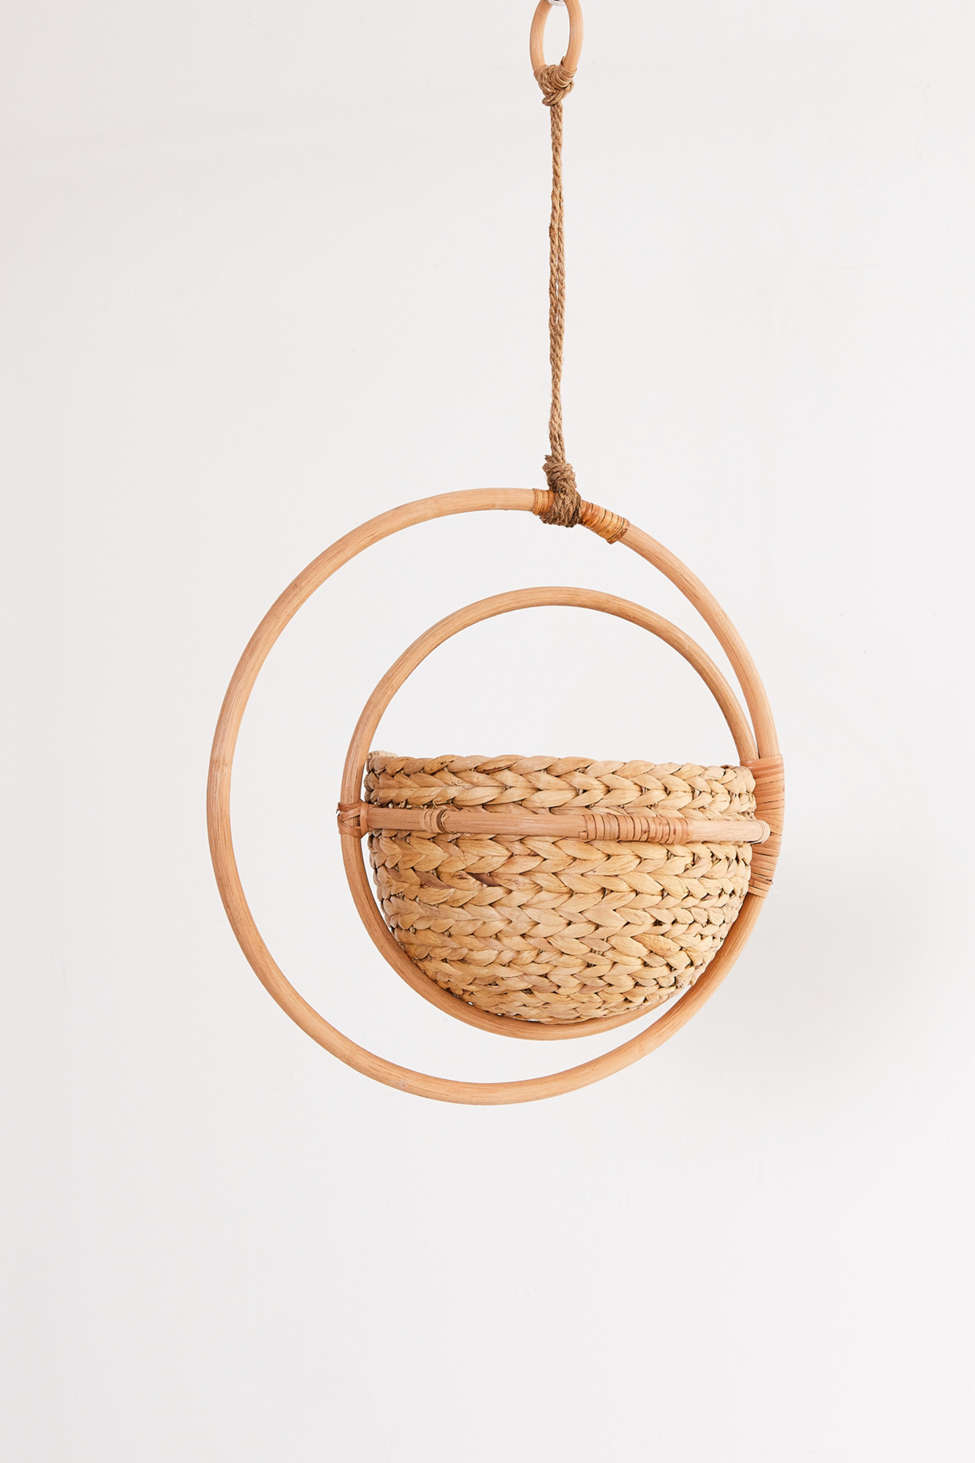 Celestial Hyacinth Hanging Planter by Urban Outfitters